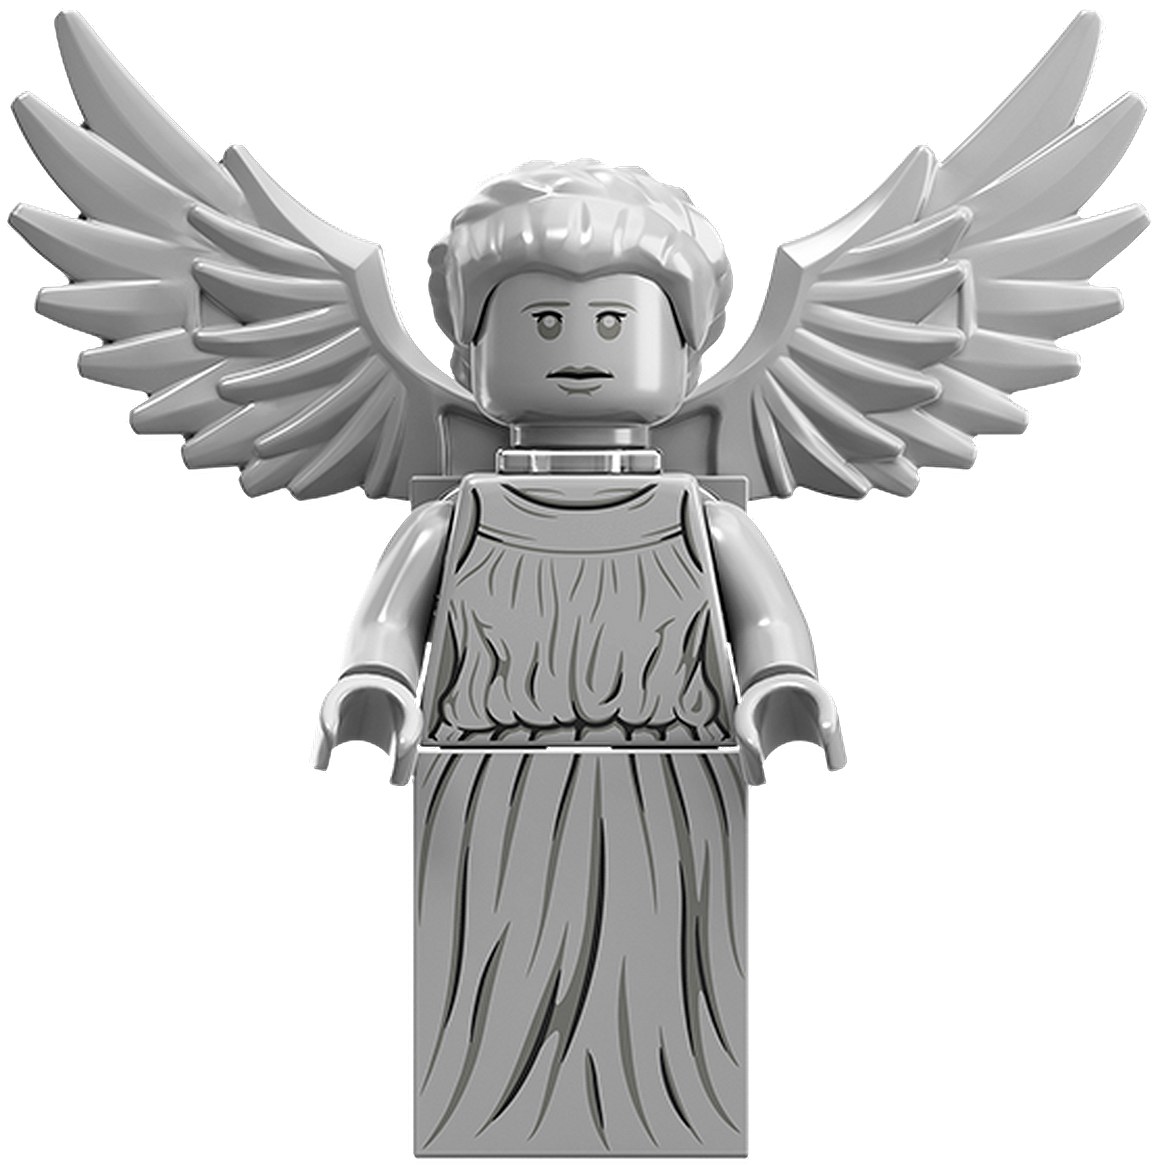 Doctor Lego Dimensions Lego Ideas Weeping Angel.